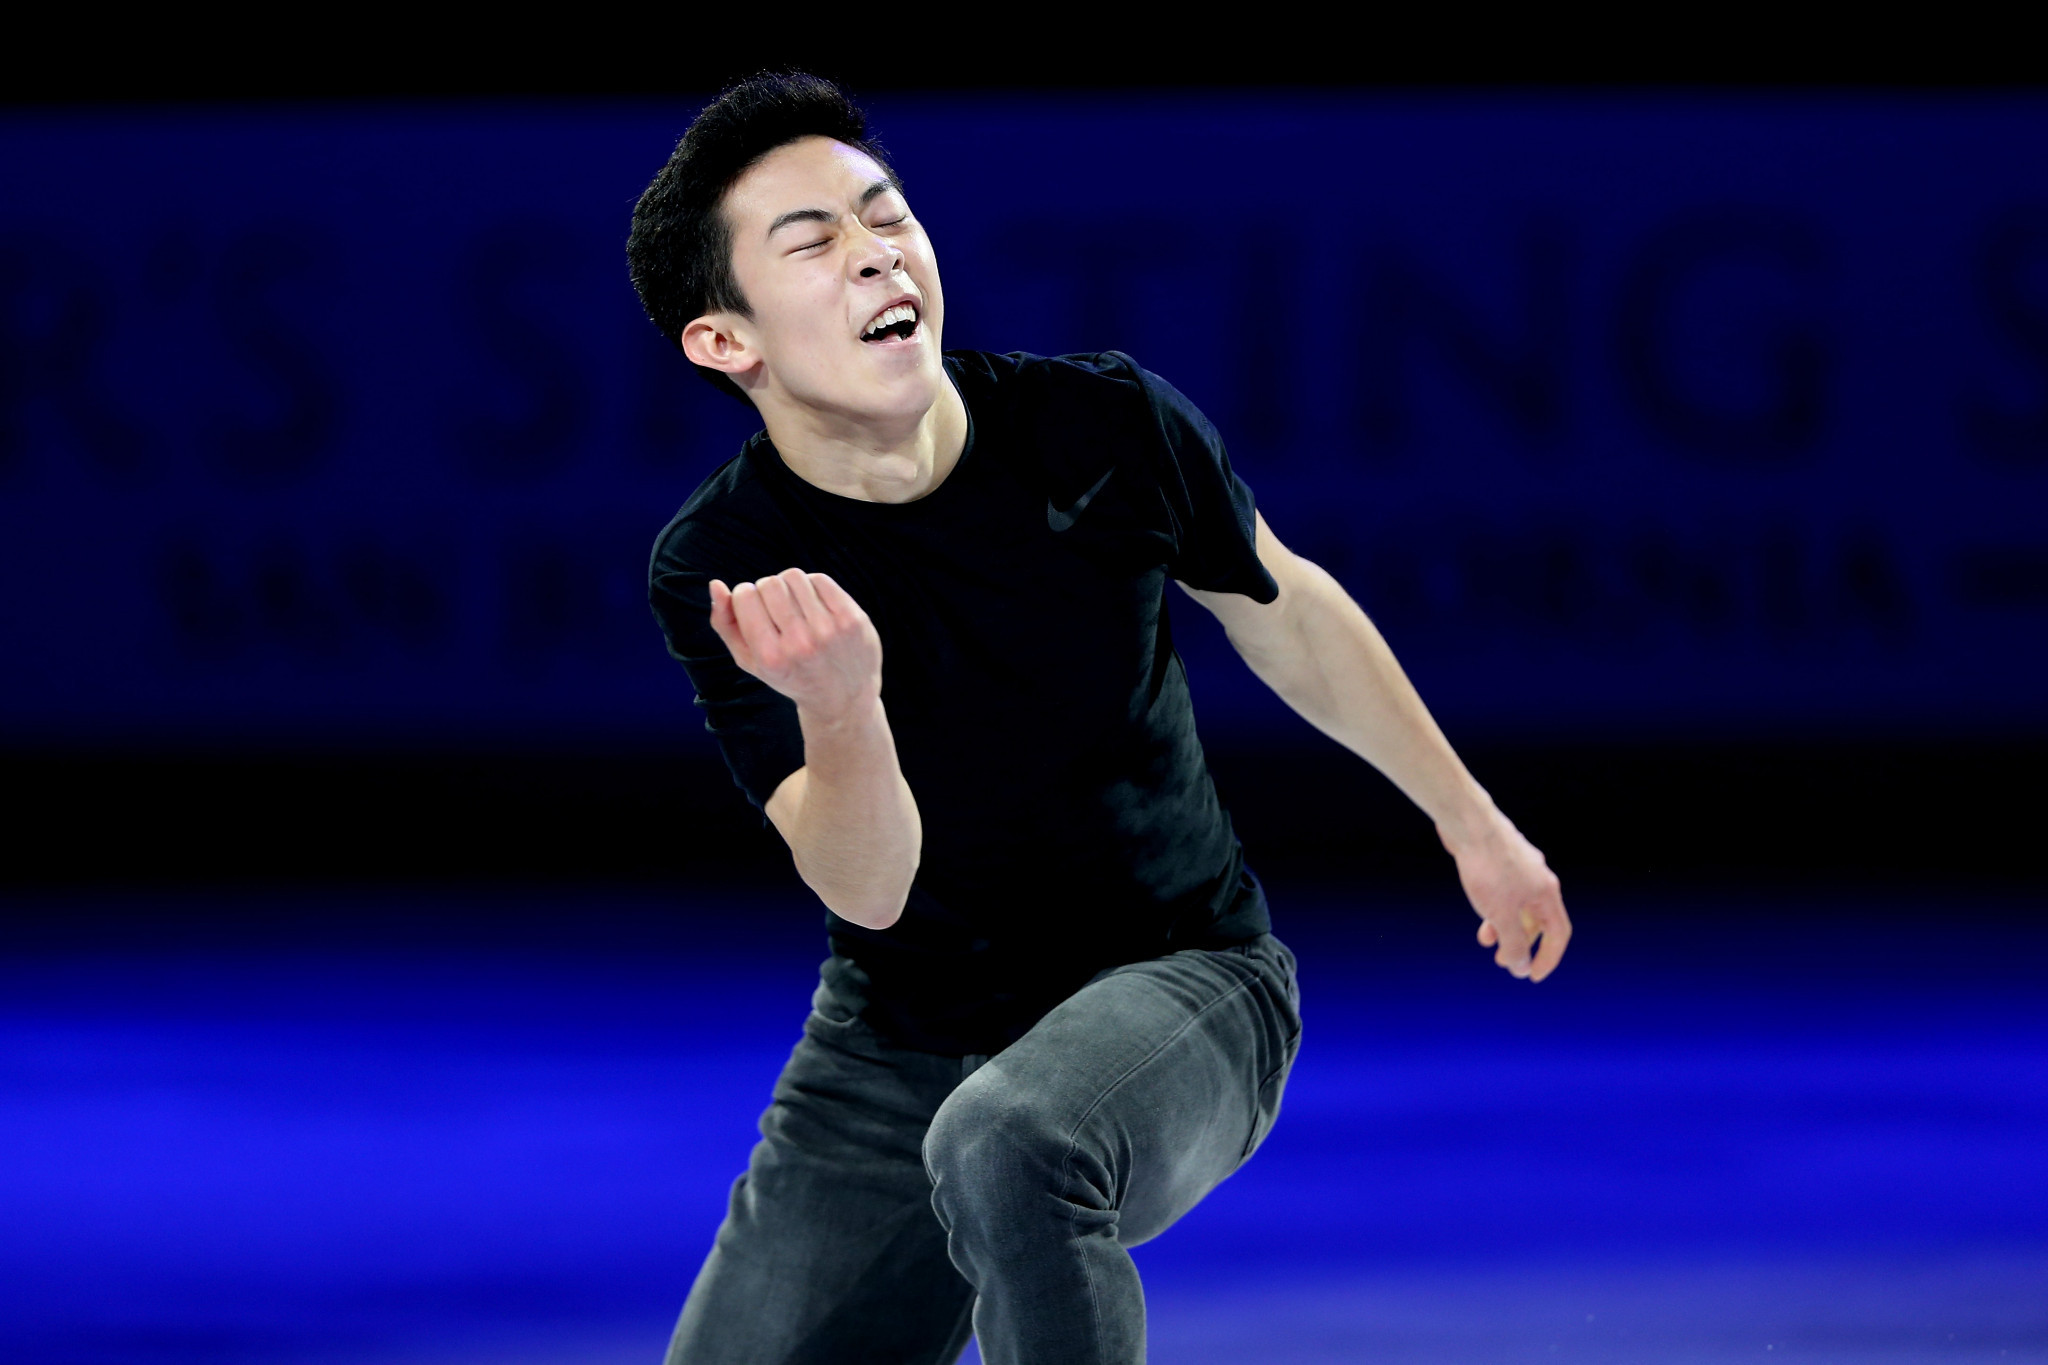 Nathan Chen will lead the American challenge in the men's figure skating event ©Getty Images